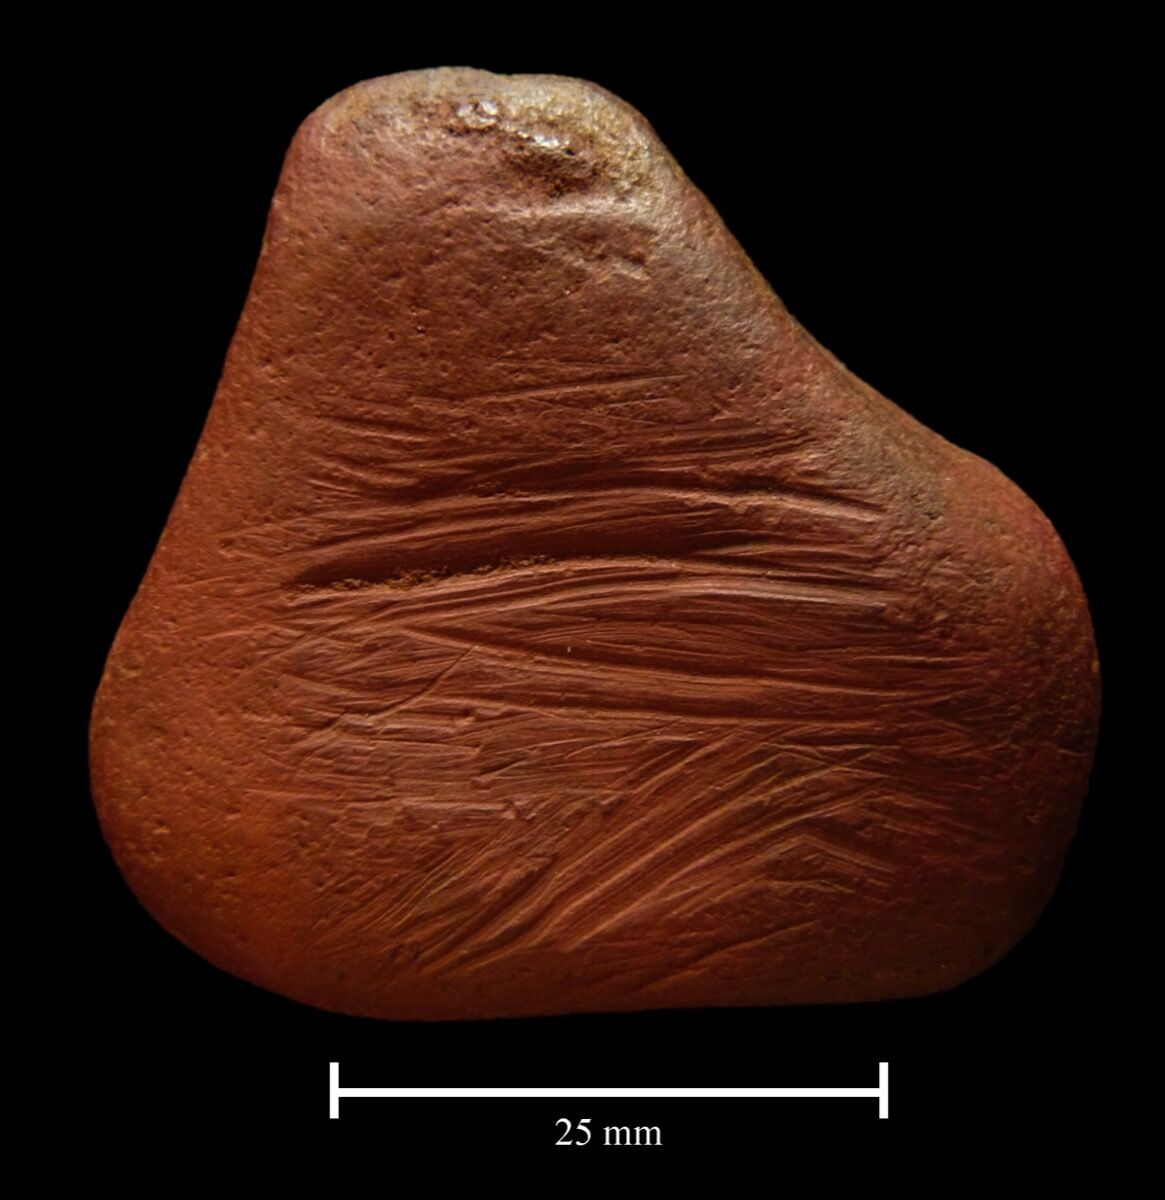 An ochre pebble found at the same site. Courtesy of Paul Shields, University of York.